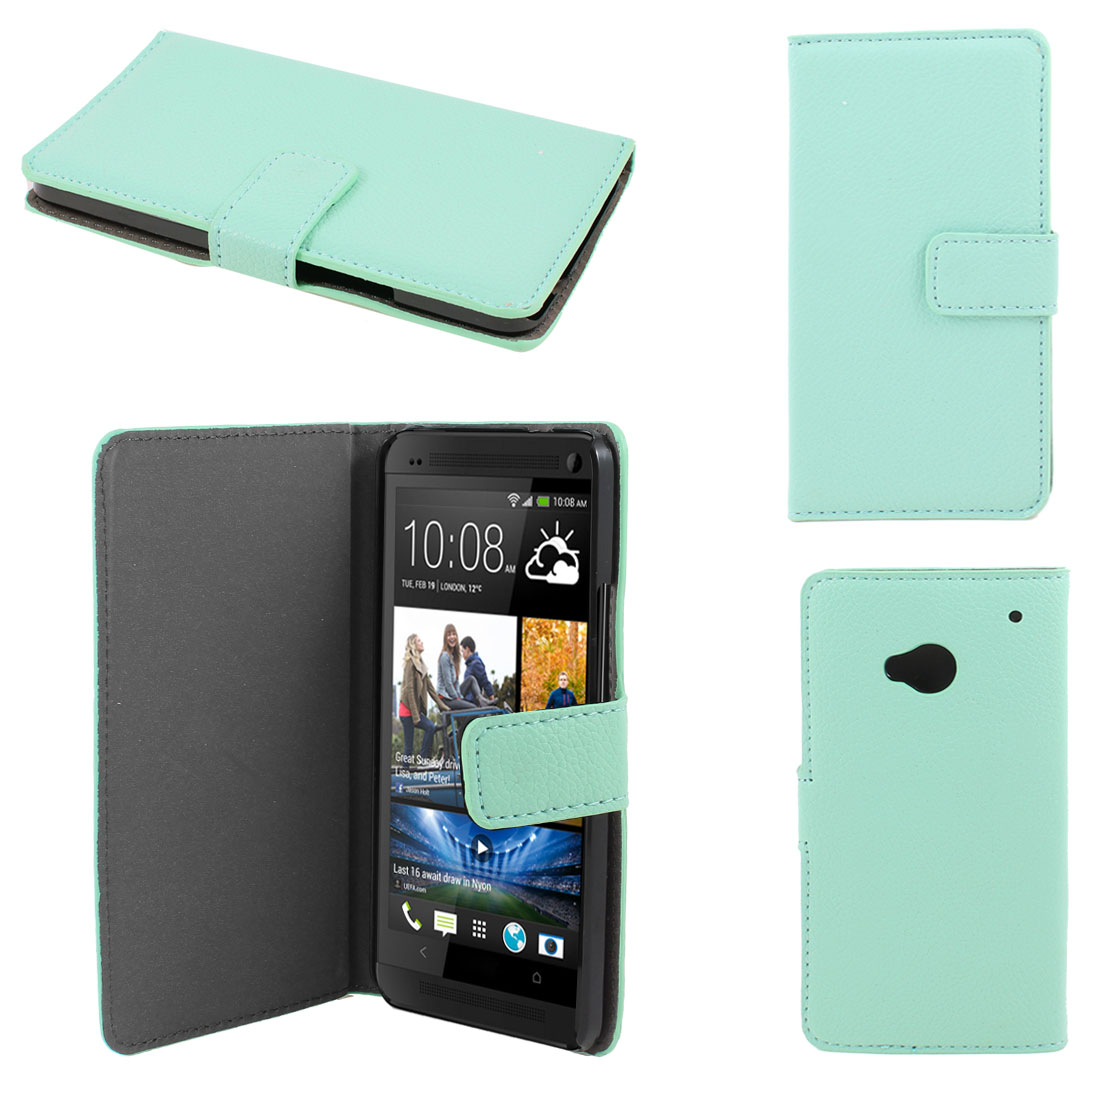 Cyan Faux Leather Litchi Print Magnetic Flip Case Cover Pouch for HTC one M7